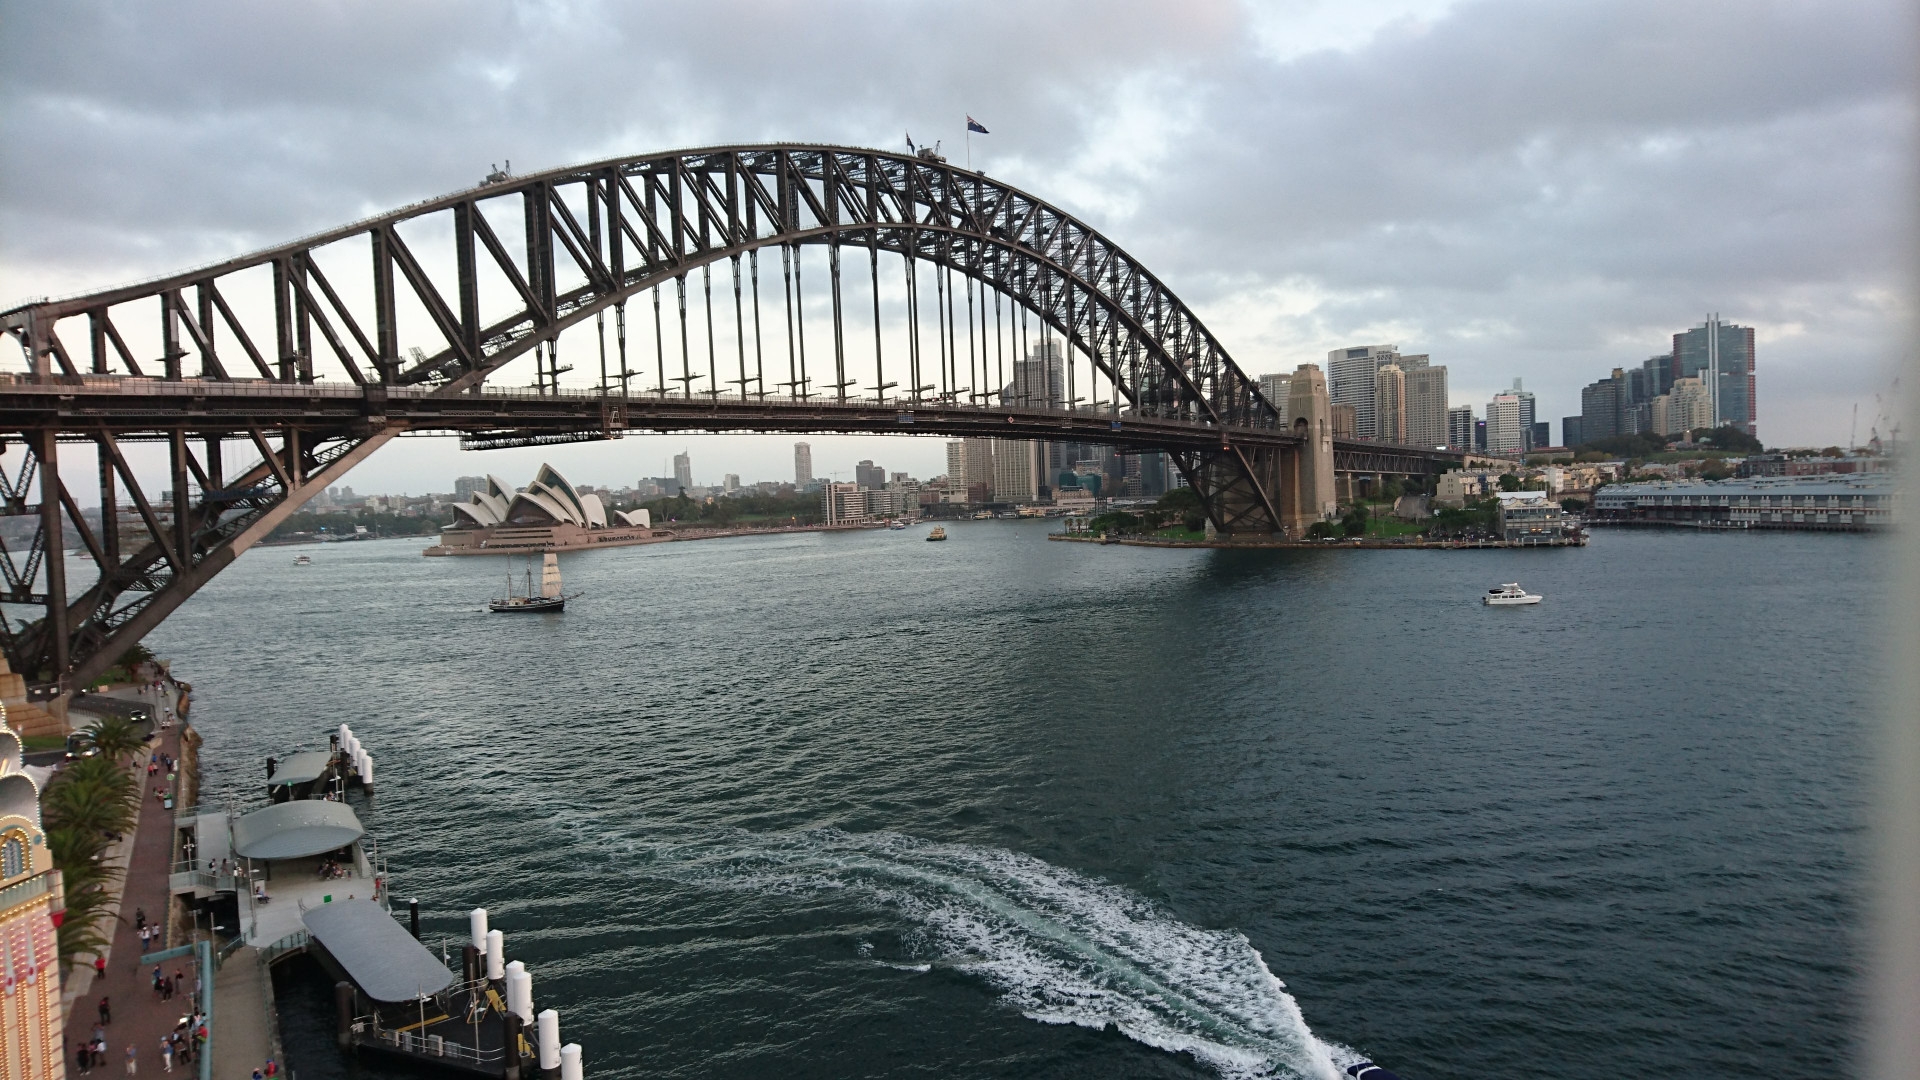 Sydney Harbour Bridge - one of Australia's most famous landmark